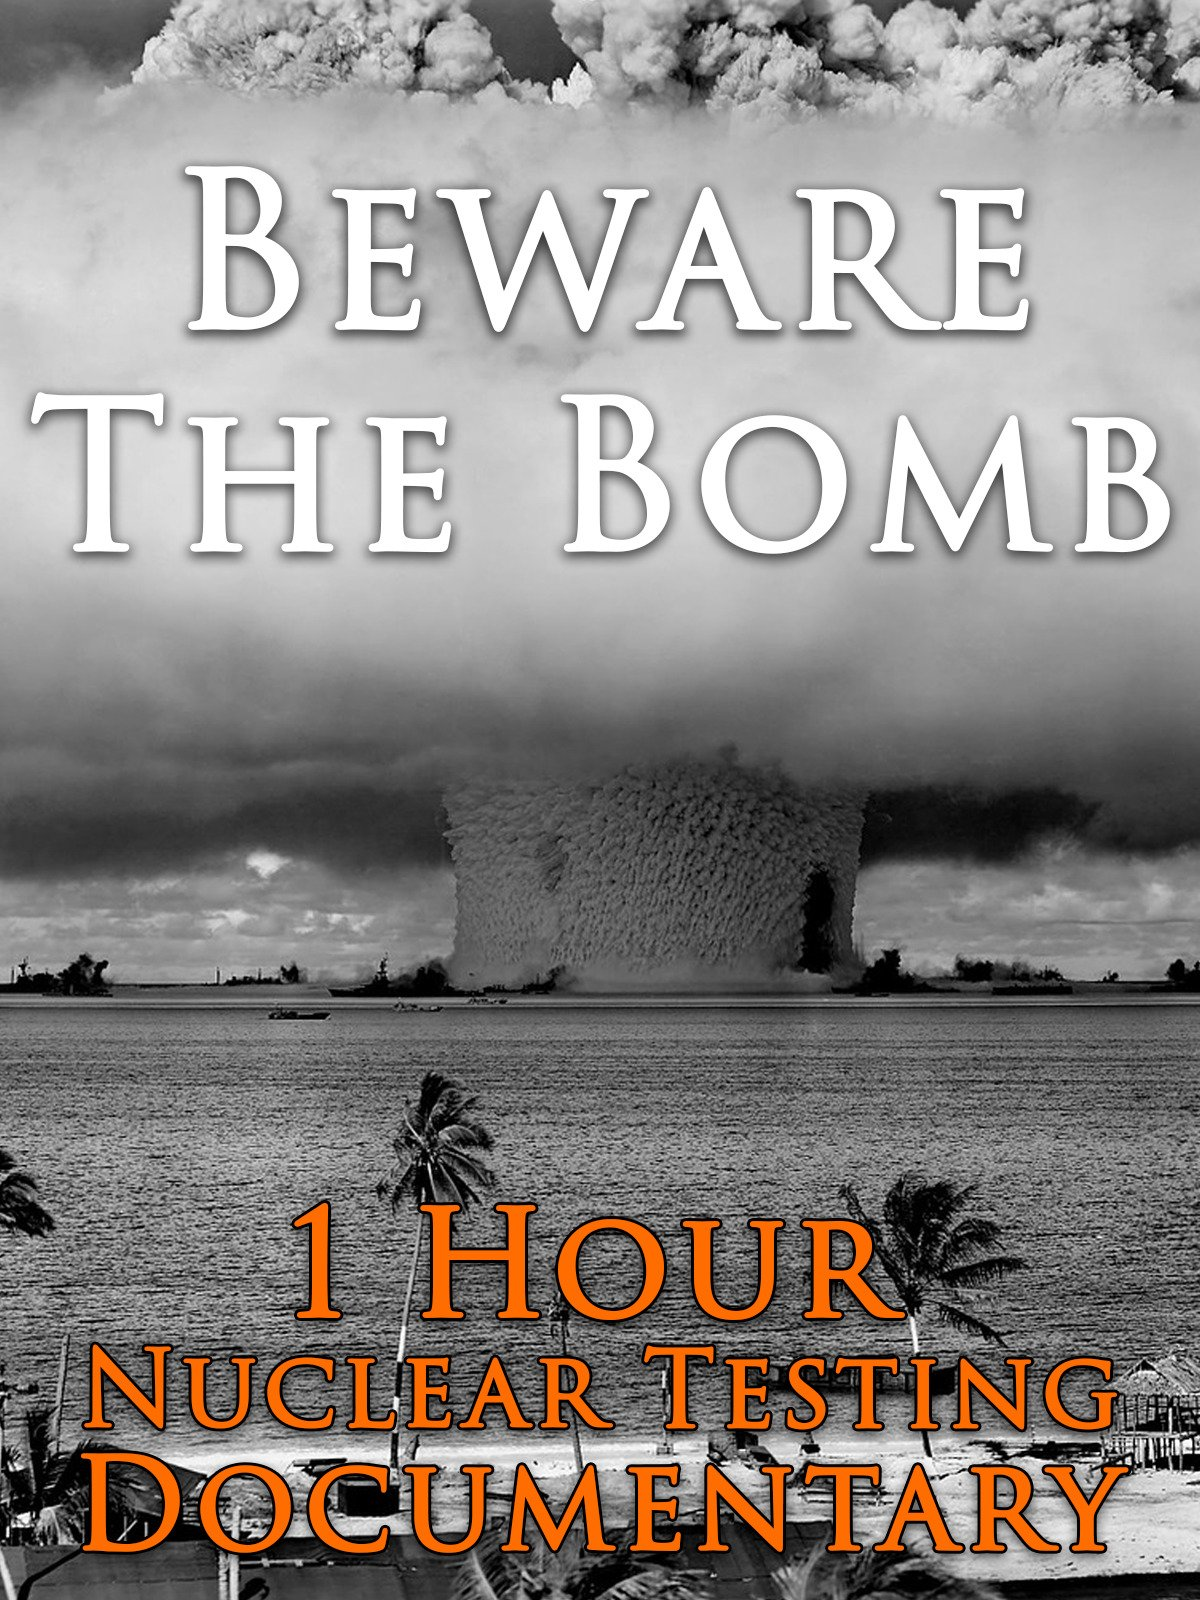 Beware The Bomb 1 Hour Nuclear Testing Documentary